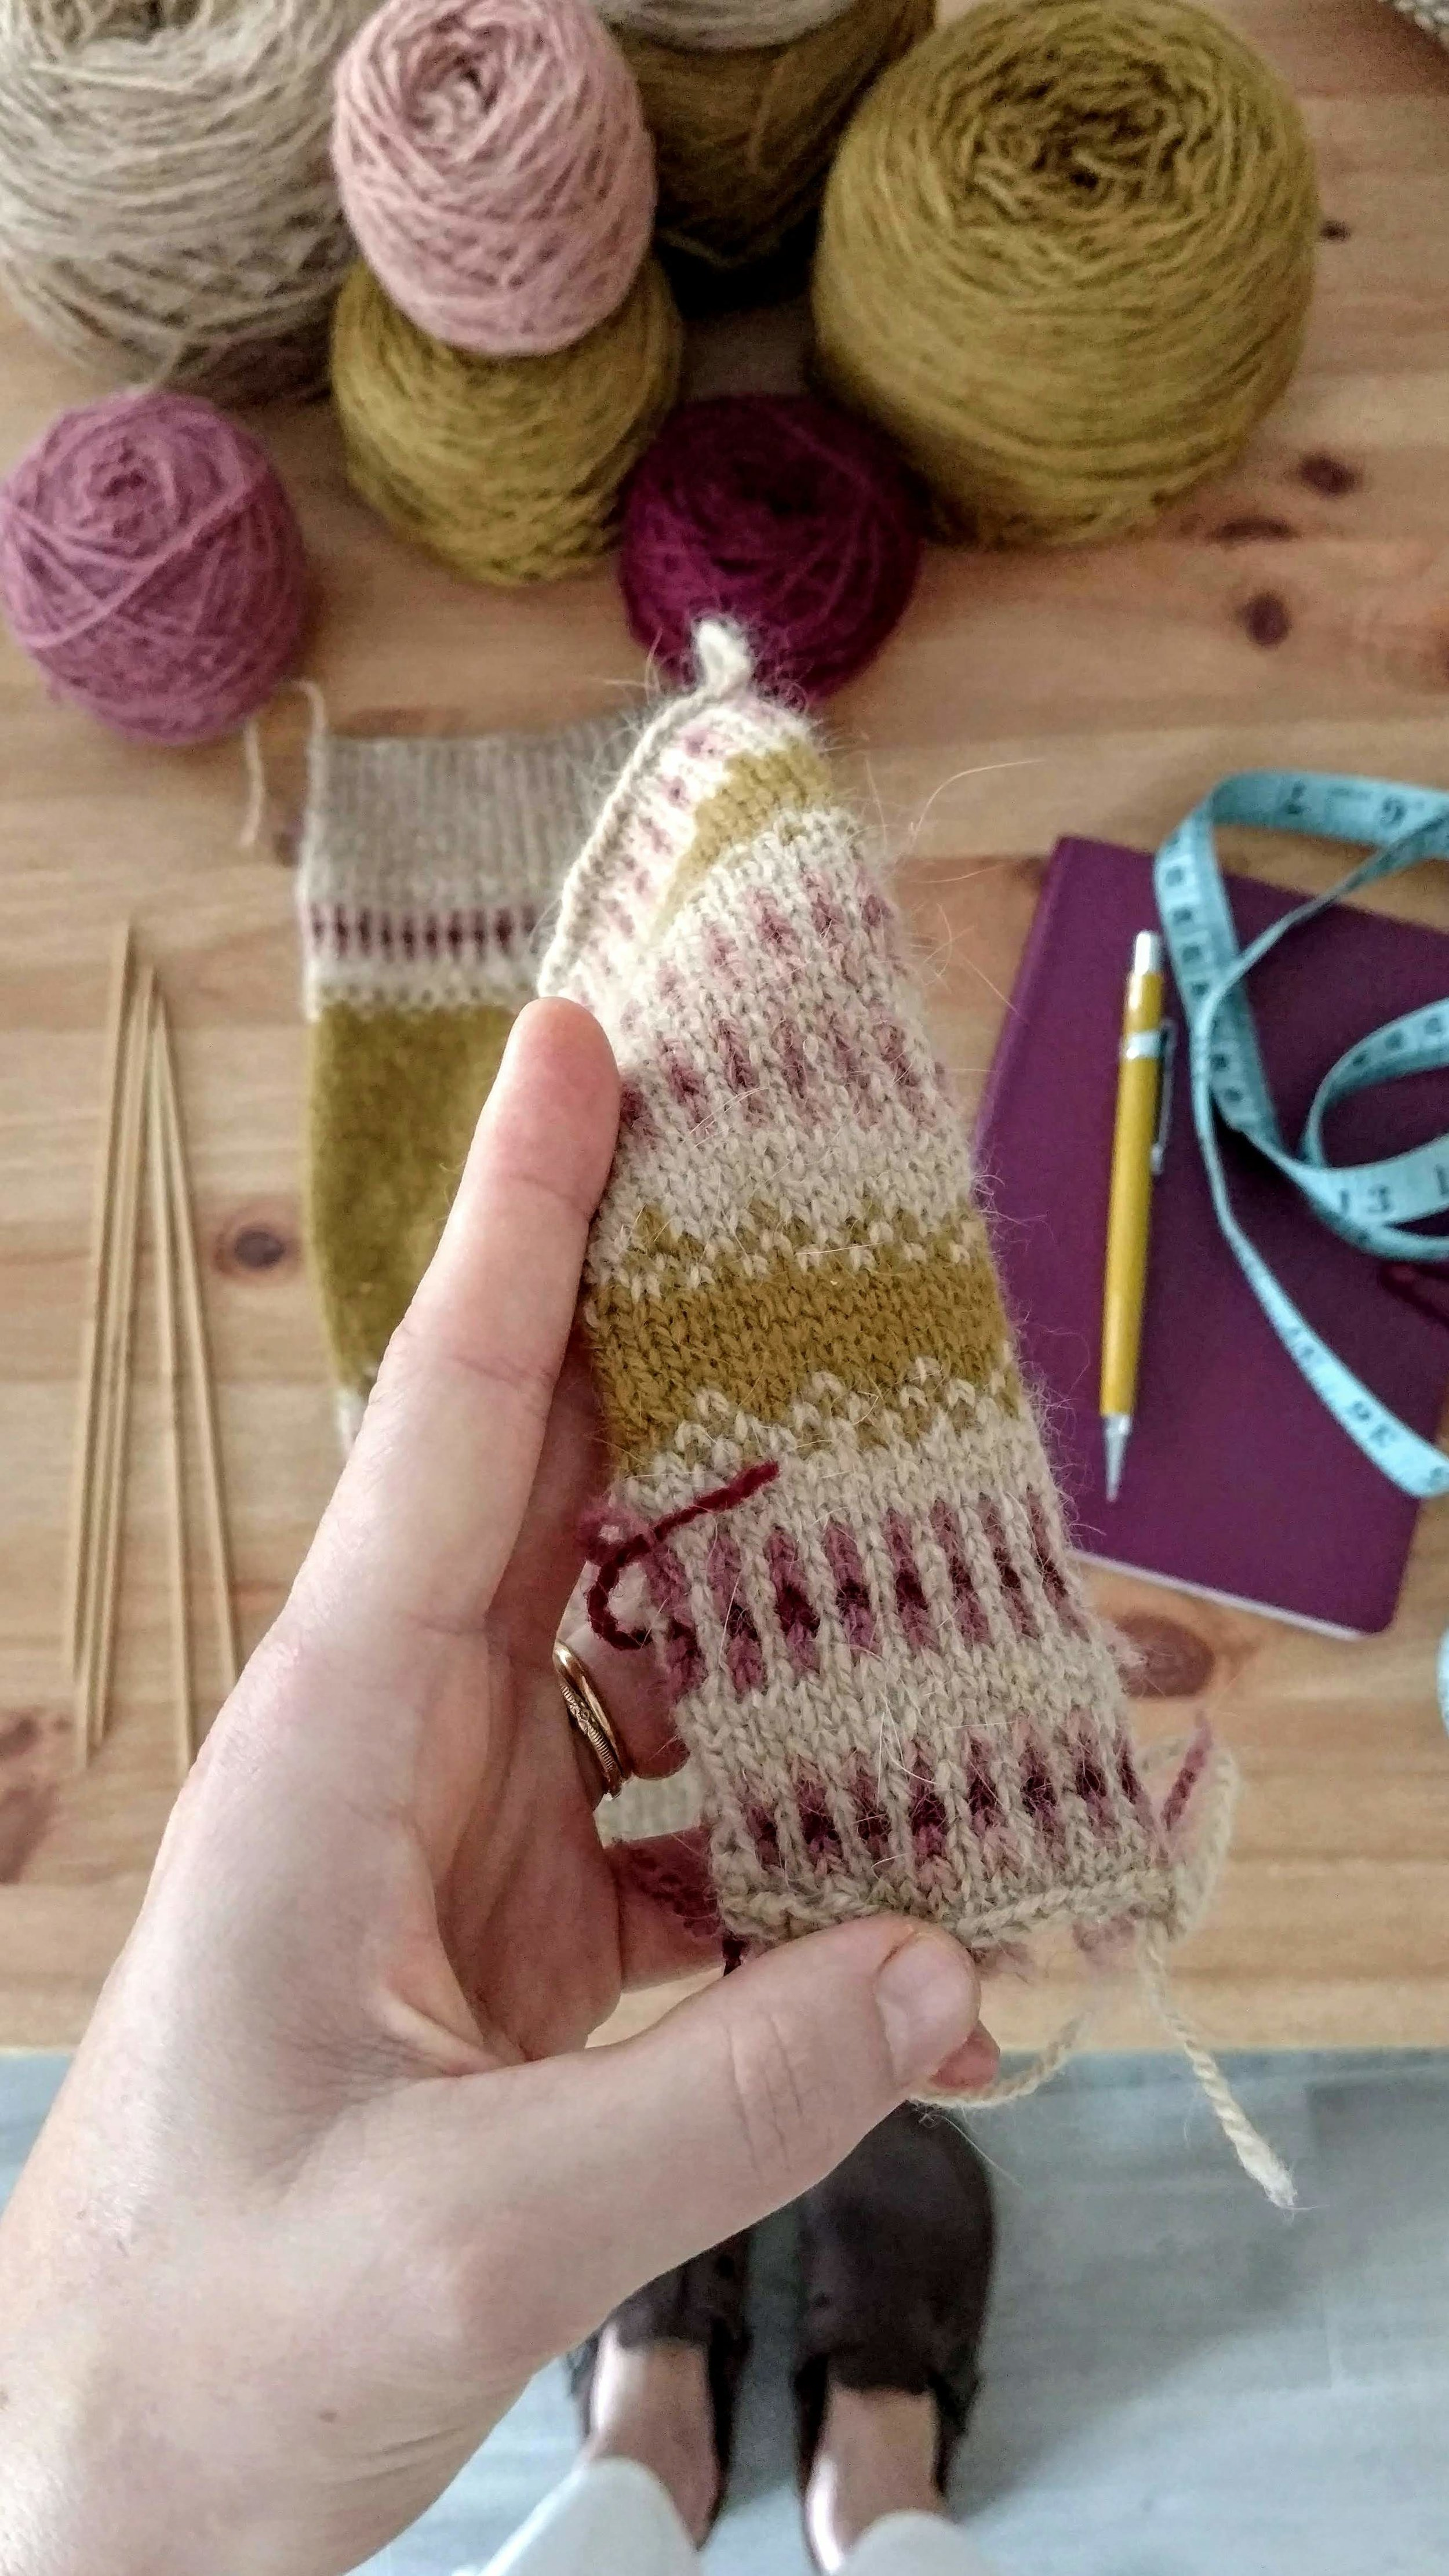 The original knitting sample with the yarn that would become my sweater in the background.